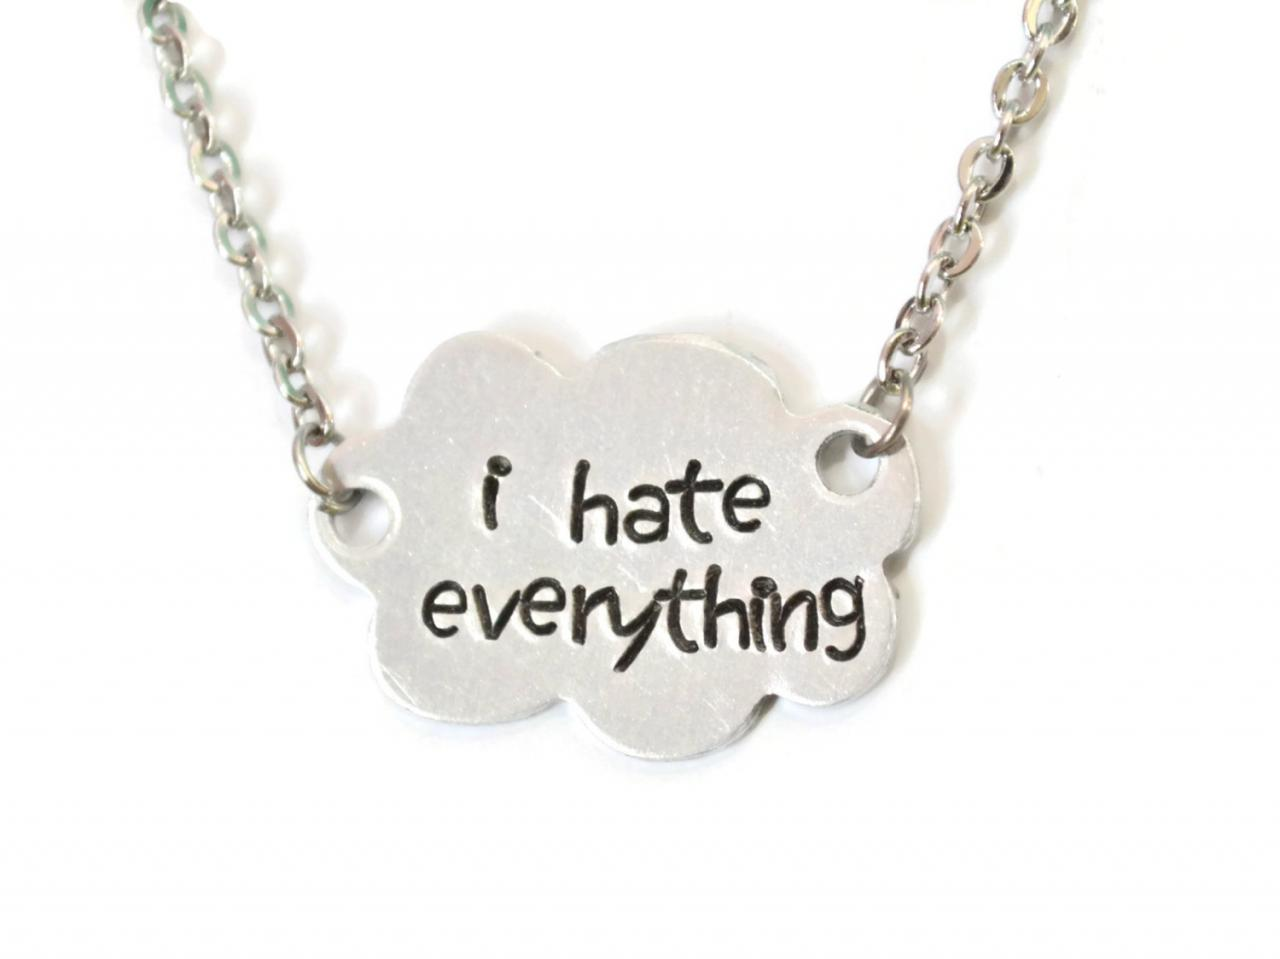 sassy quote cloud necklace STFU I hate everything I don't care NOPE MEOW F*ck off metal stamped with stainless steel chain